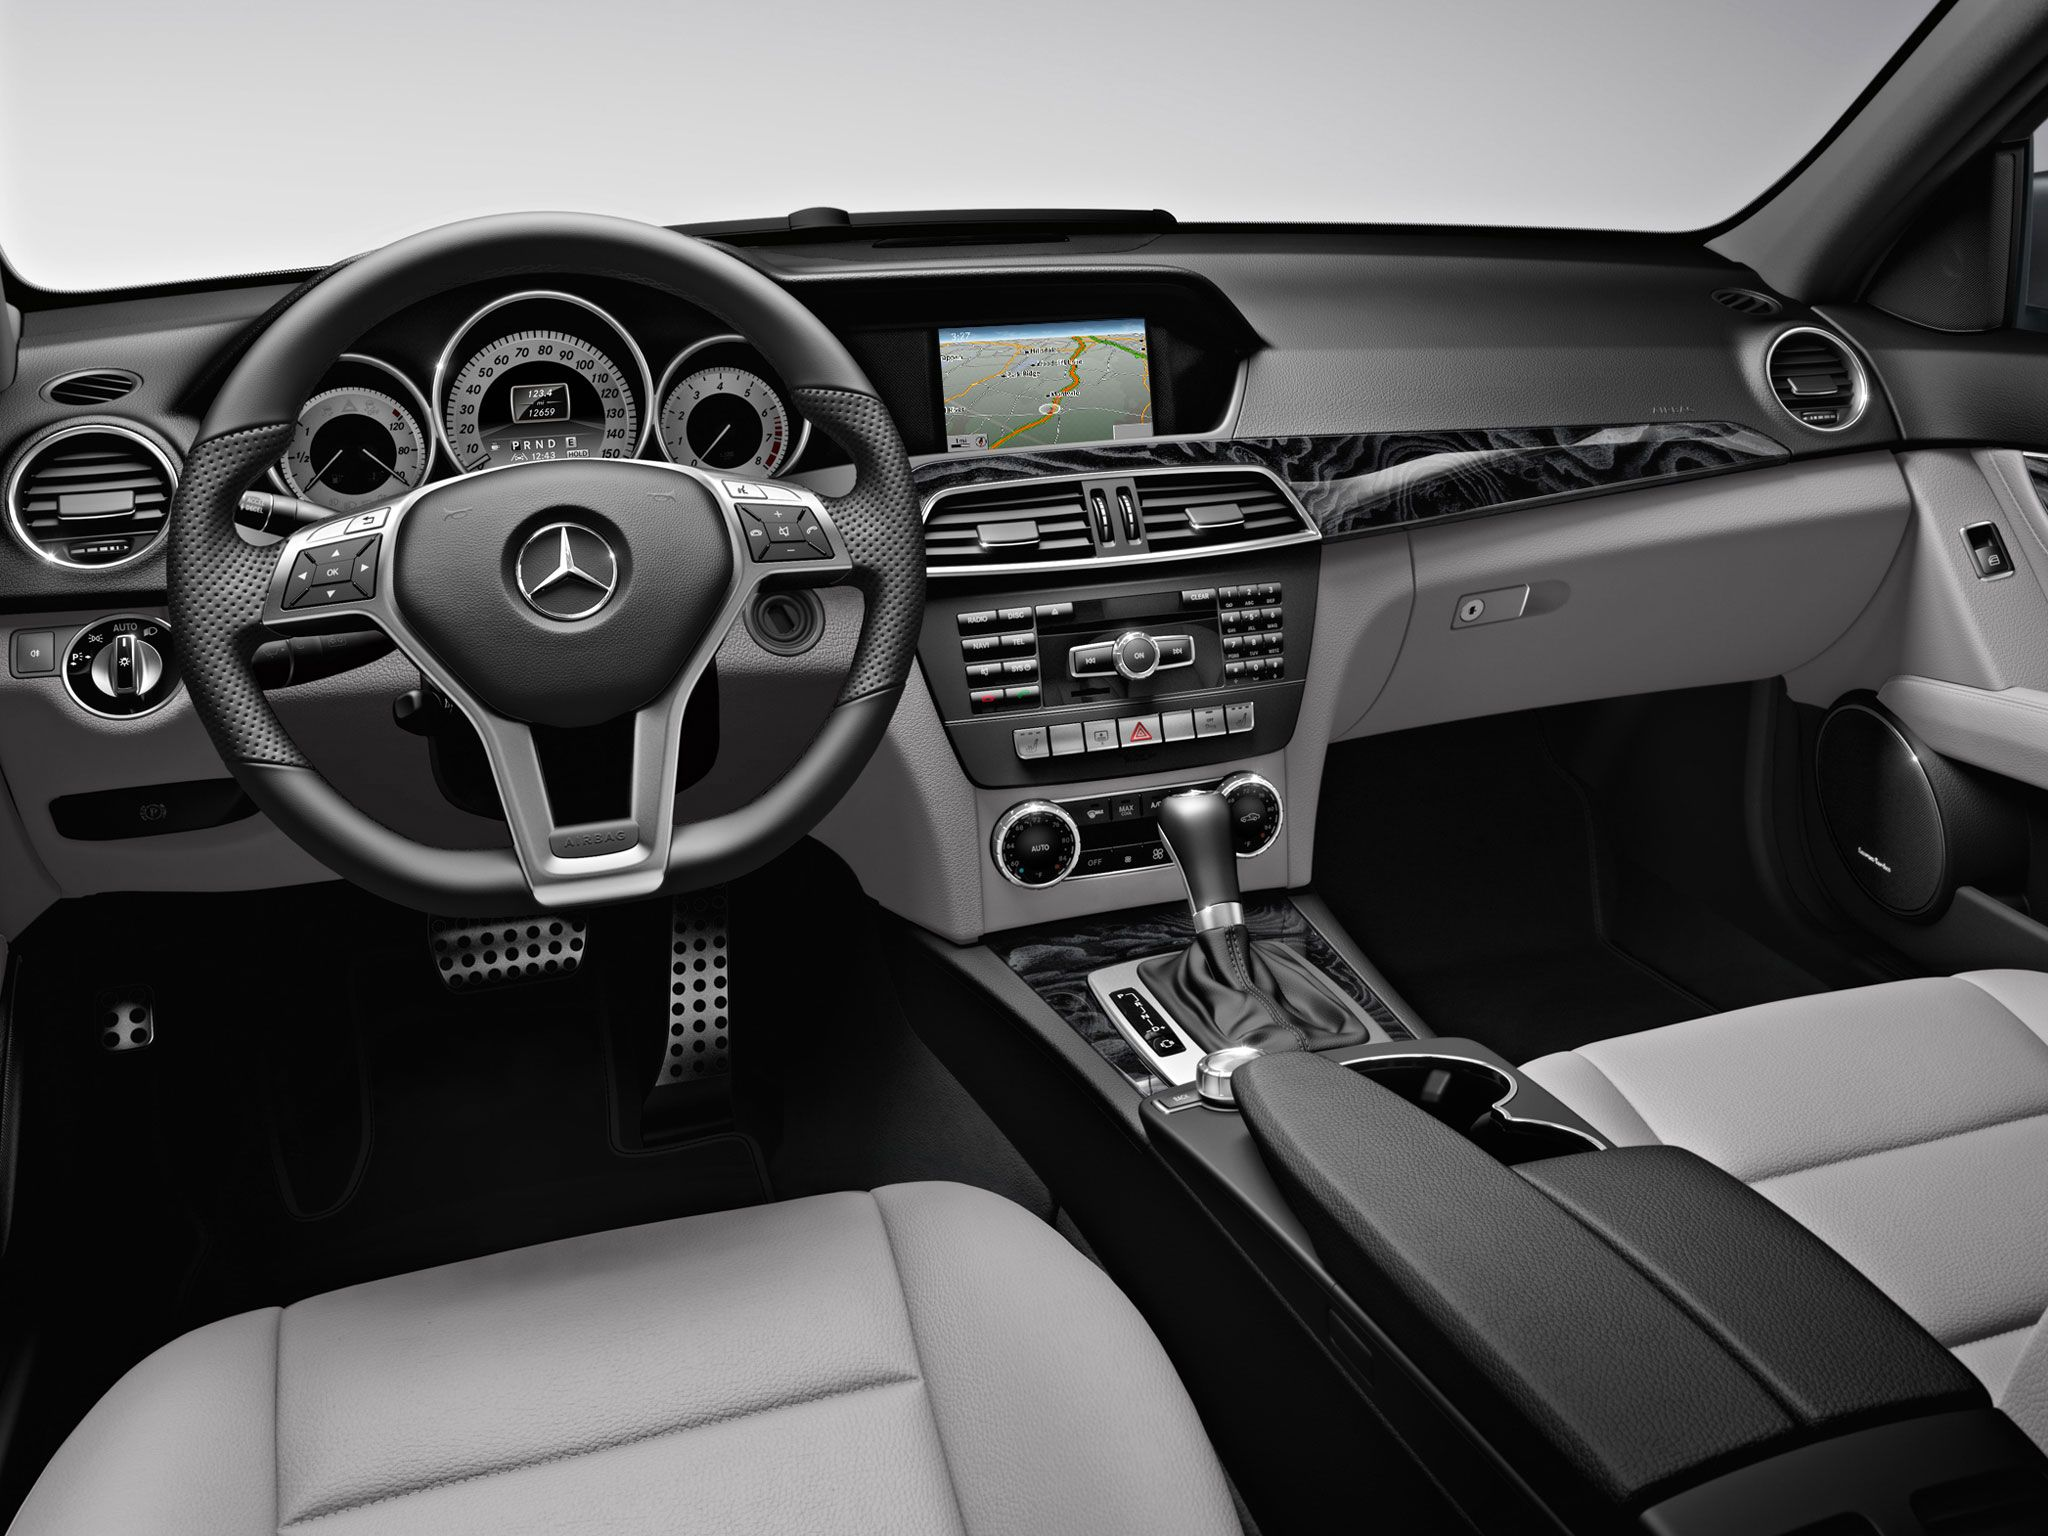 2013 mercedes c350 sedan interior in ash leather [ 2048 x 1536 Pixel ]